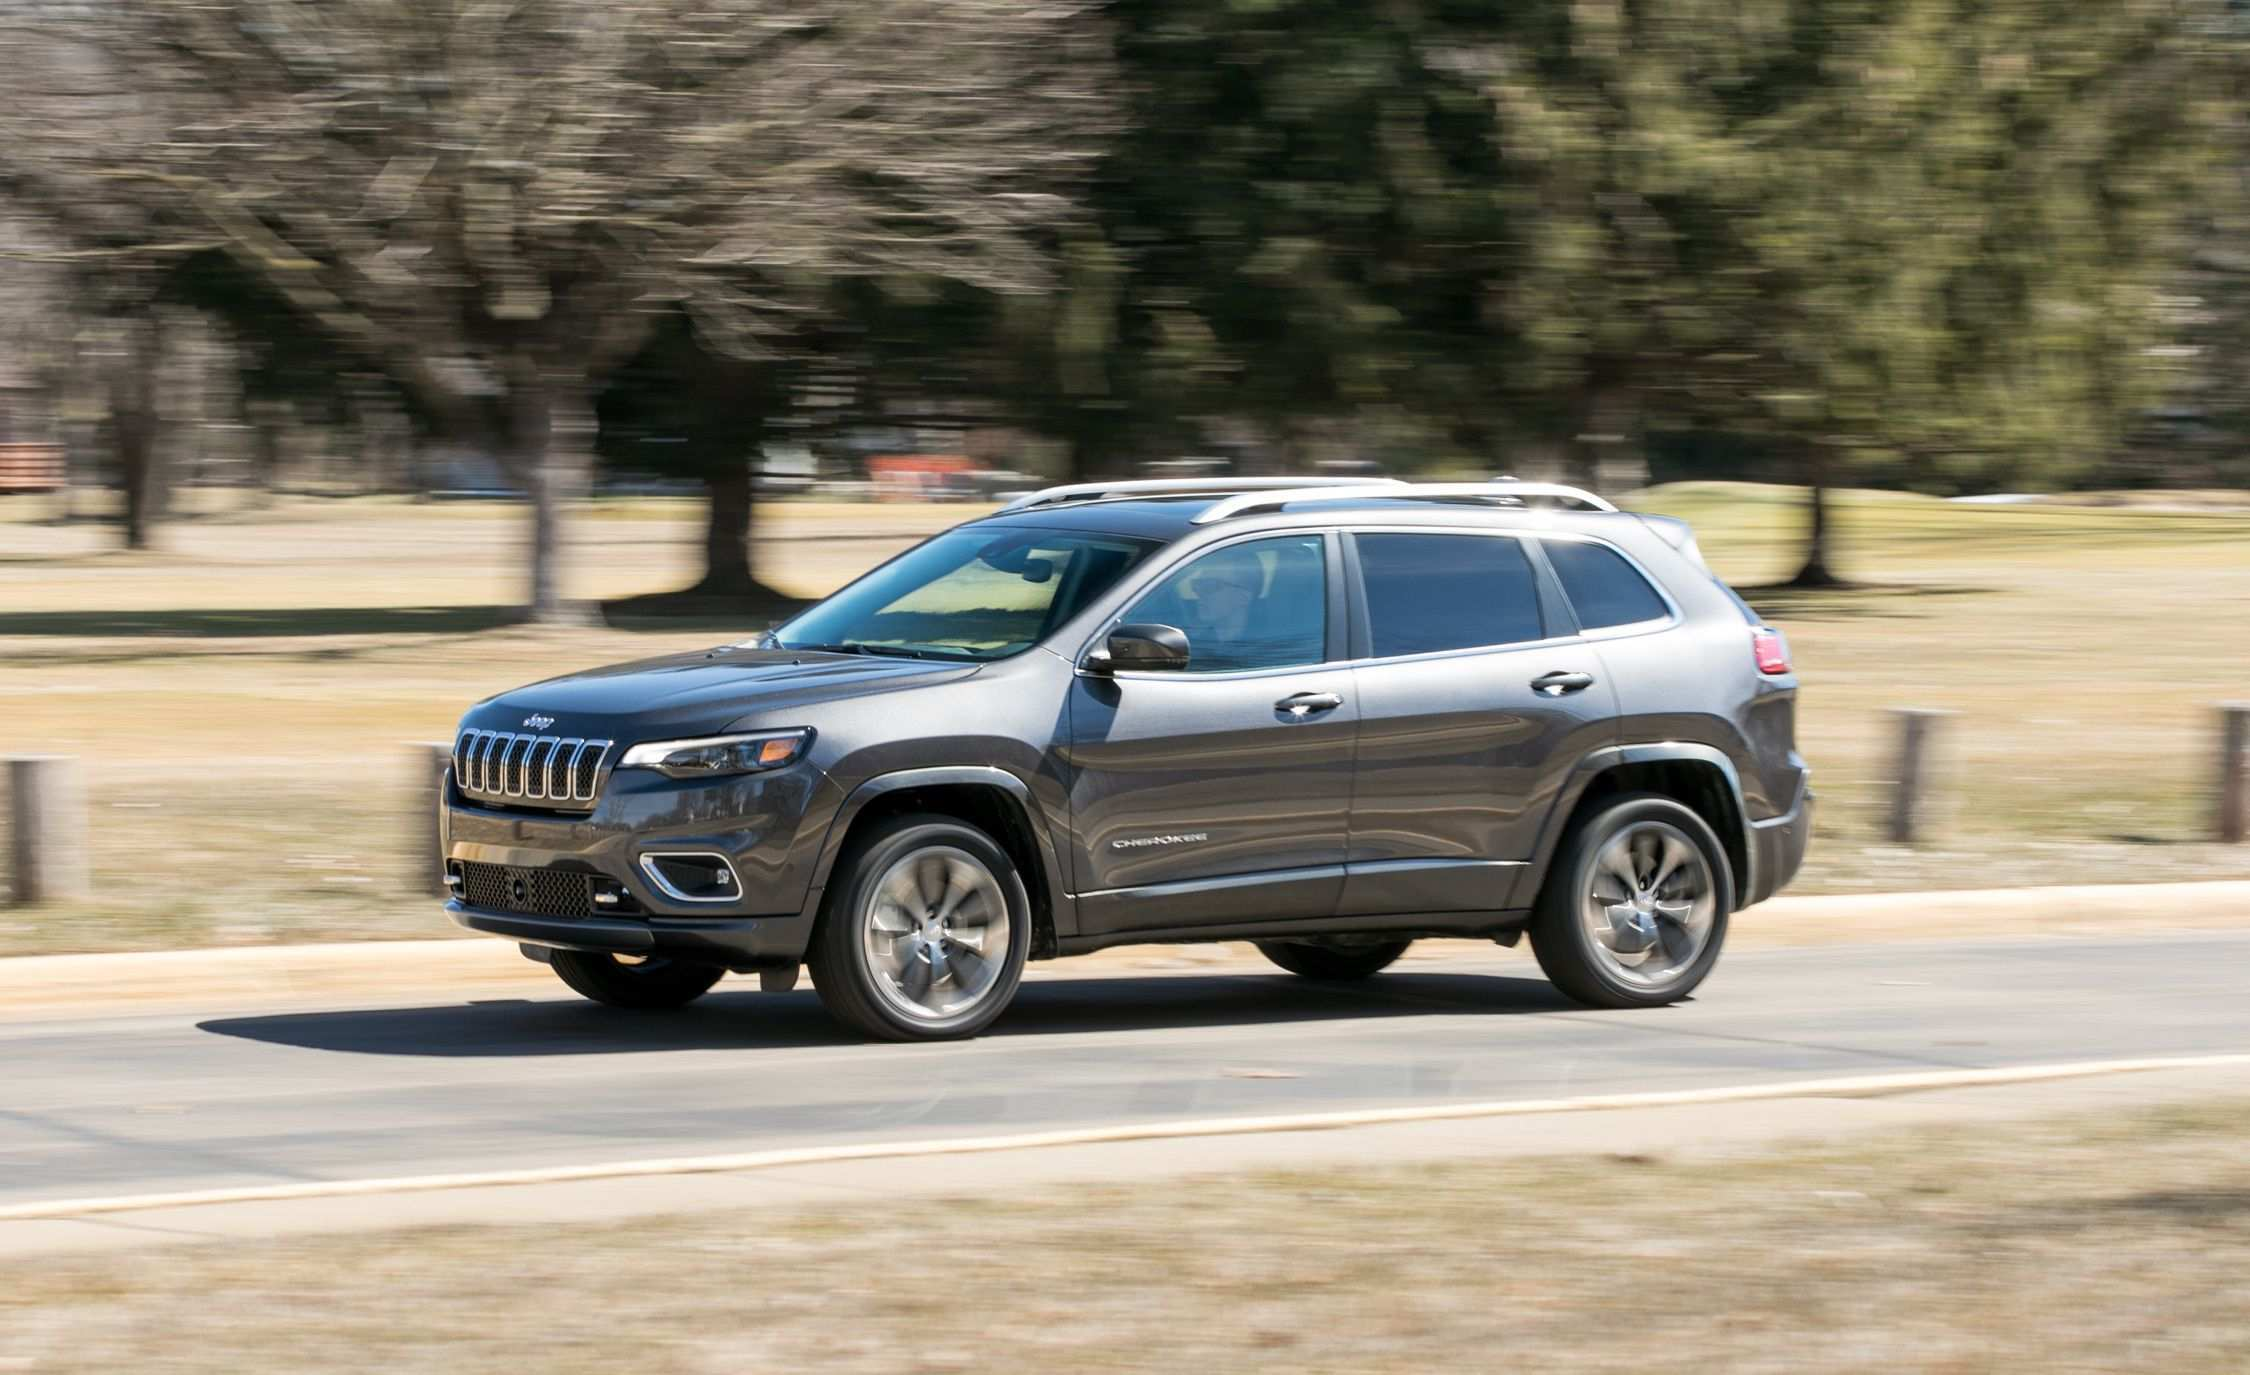 92 Gallery of The 2019 Jeep Cherokee Ride Quality Release Date Price And Review Price with The 2019 Jeep Cherokee Ride Quality Release Date Price And Review